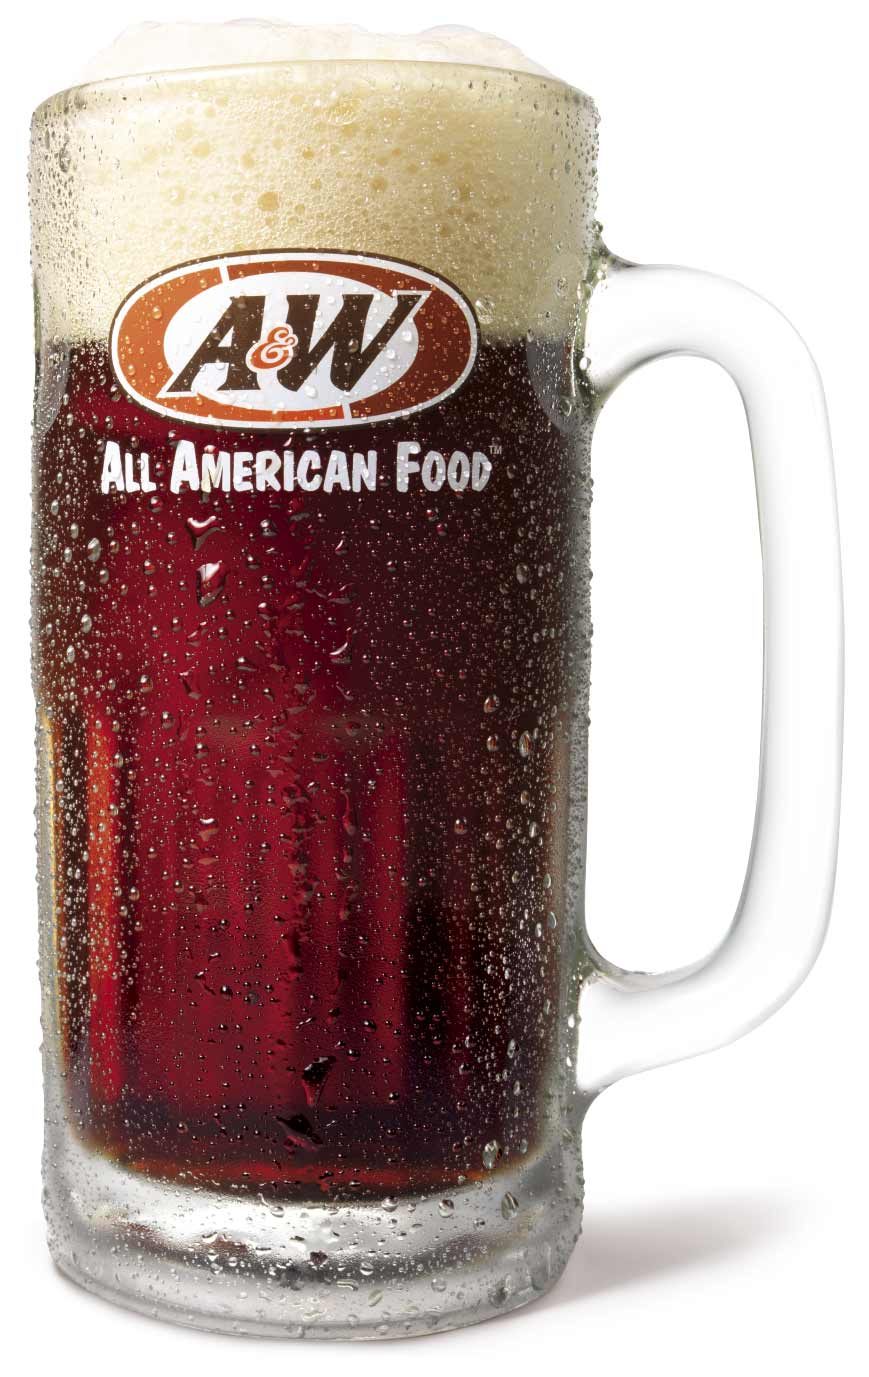 A&W All-American Food, Townsend MT